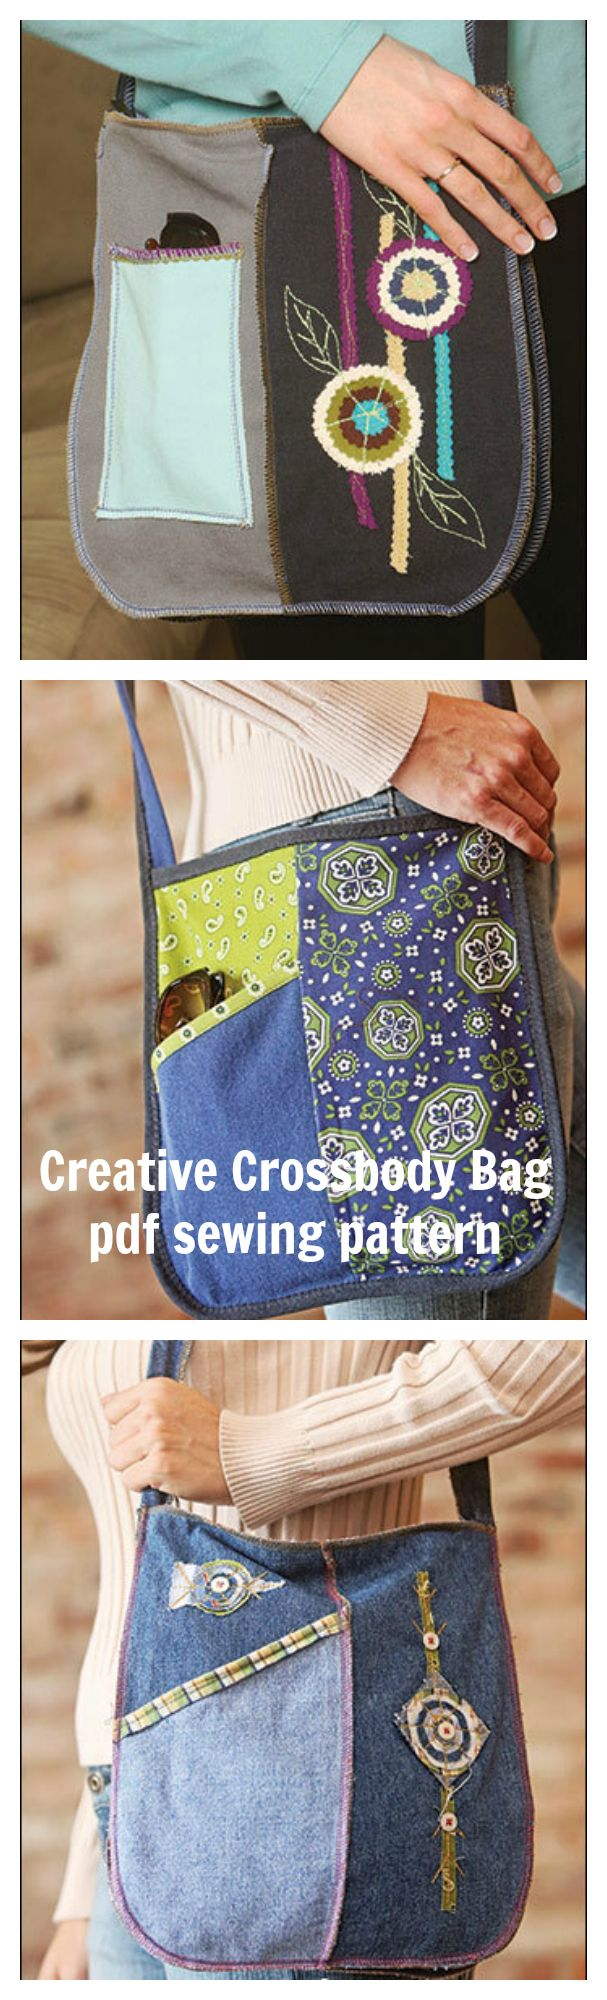 Creative Crossbody Bag Digital Sewing Pattern PDF - create three versions of this shoulder bag including a recycled denim jean option